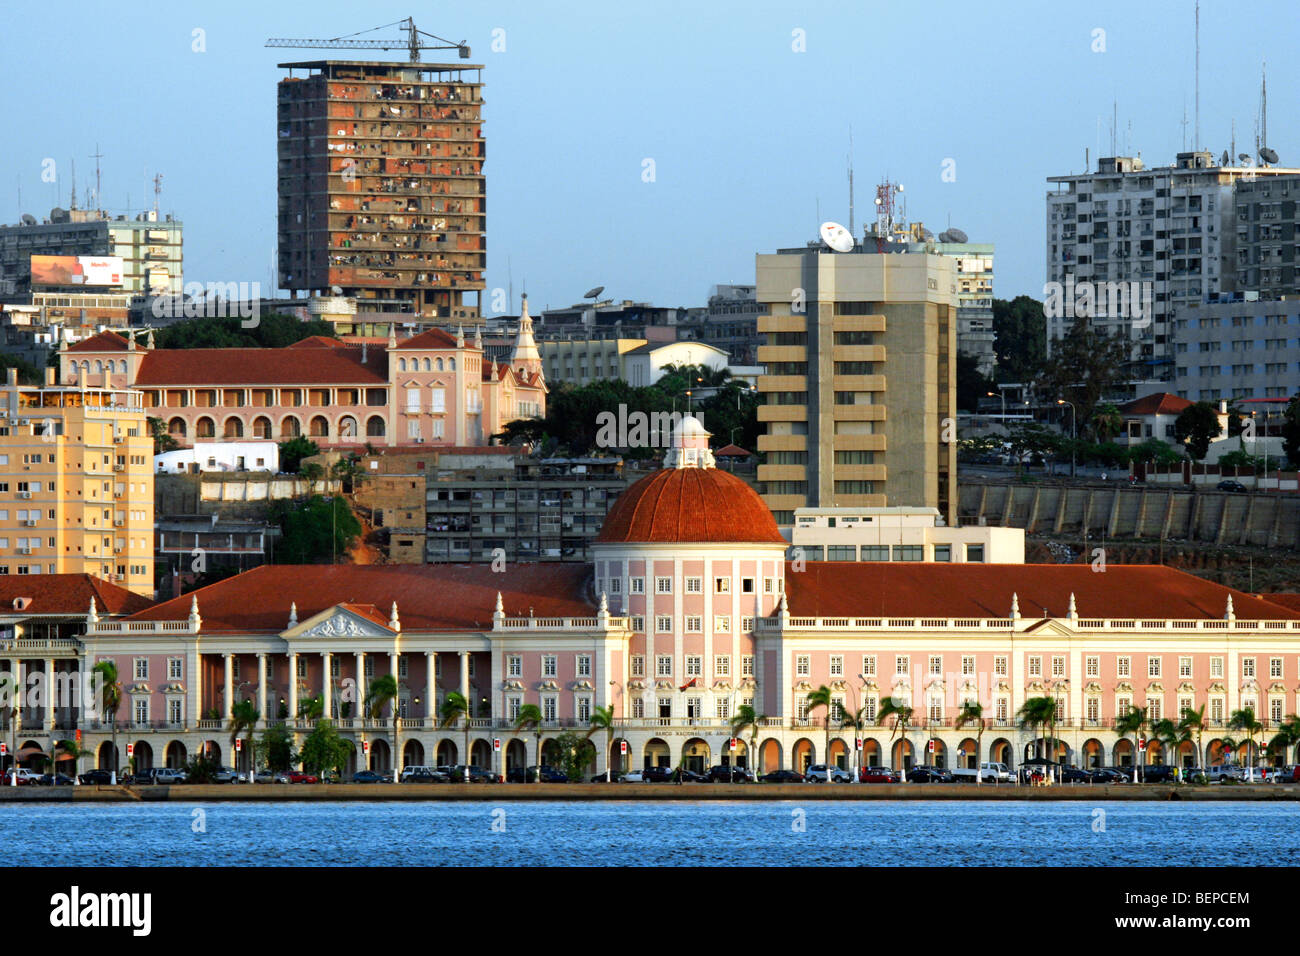 High-rise blocks in the business centre of Luanda, capital city of Angola, Southern Africa - Stock Image